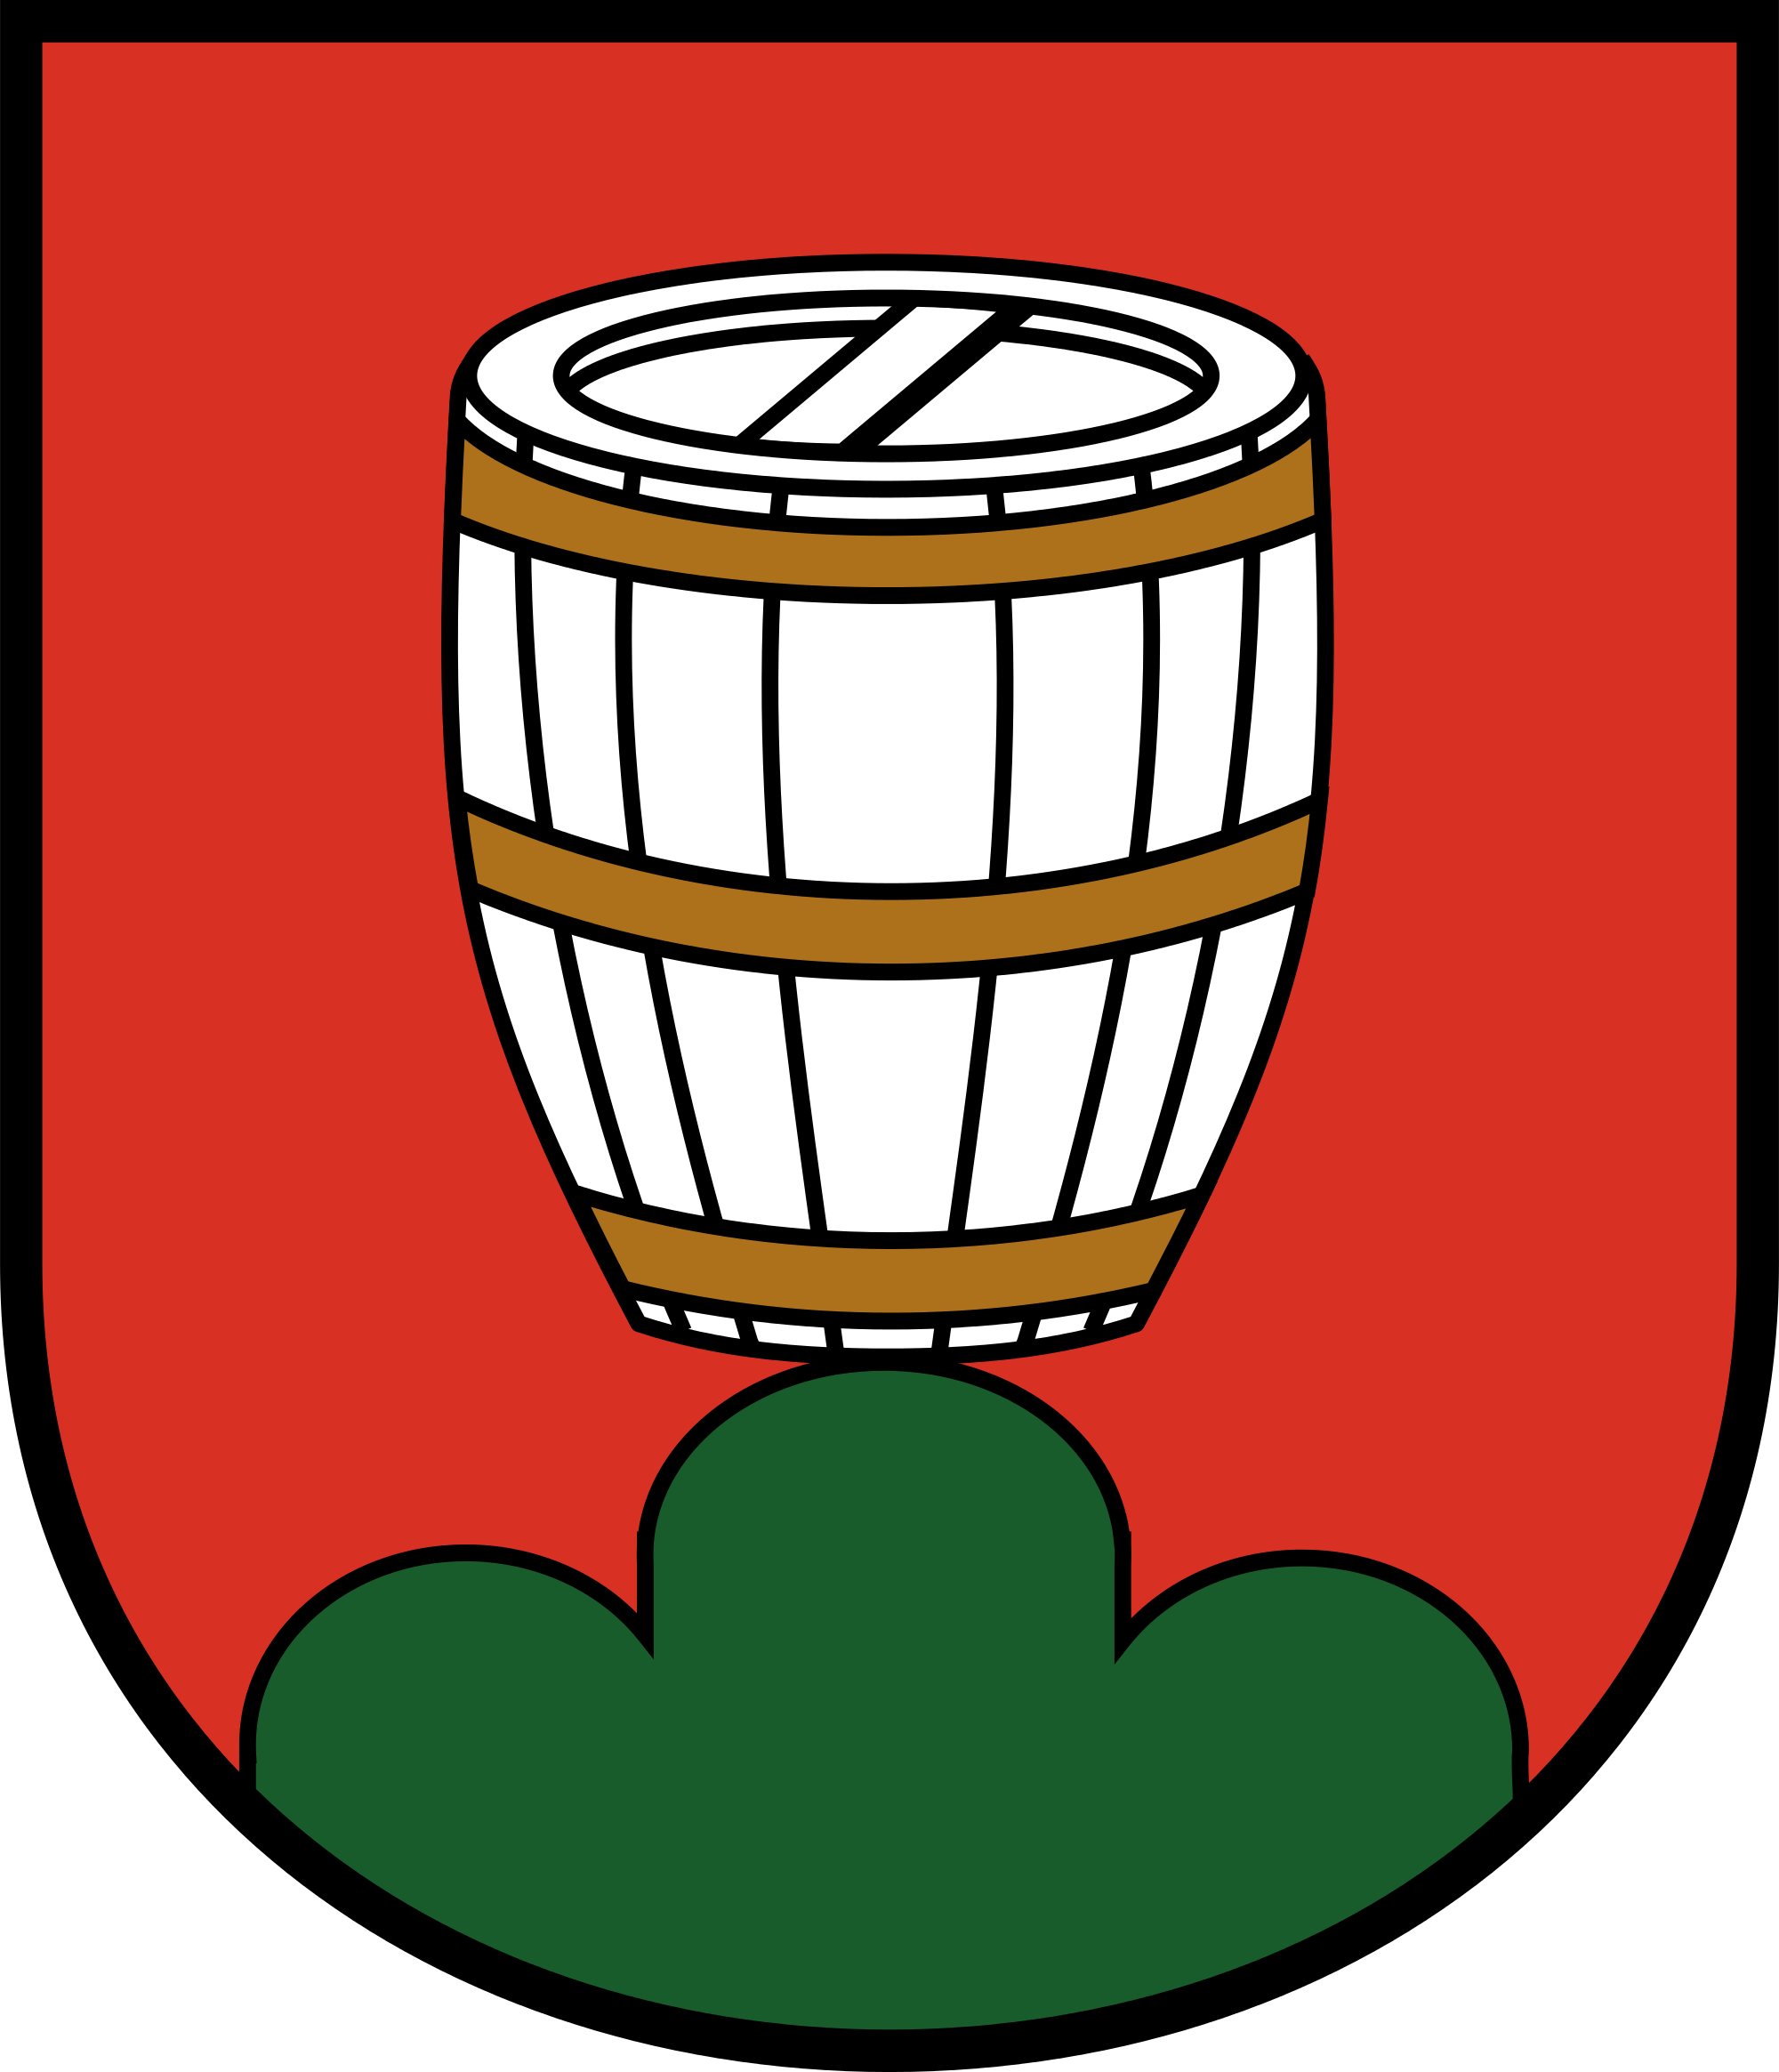 File:Coat of arms Kufstein.svg.